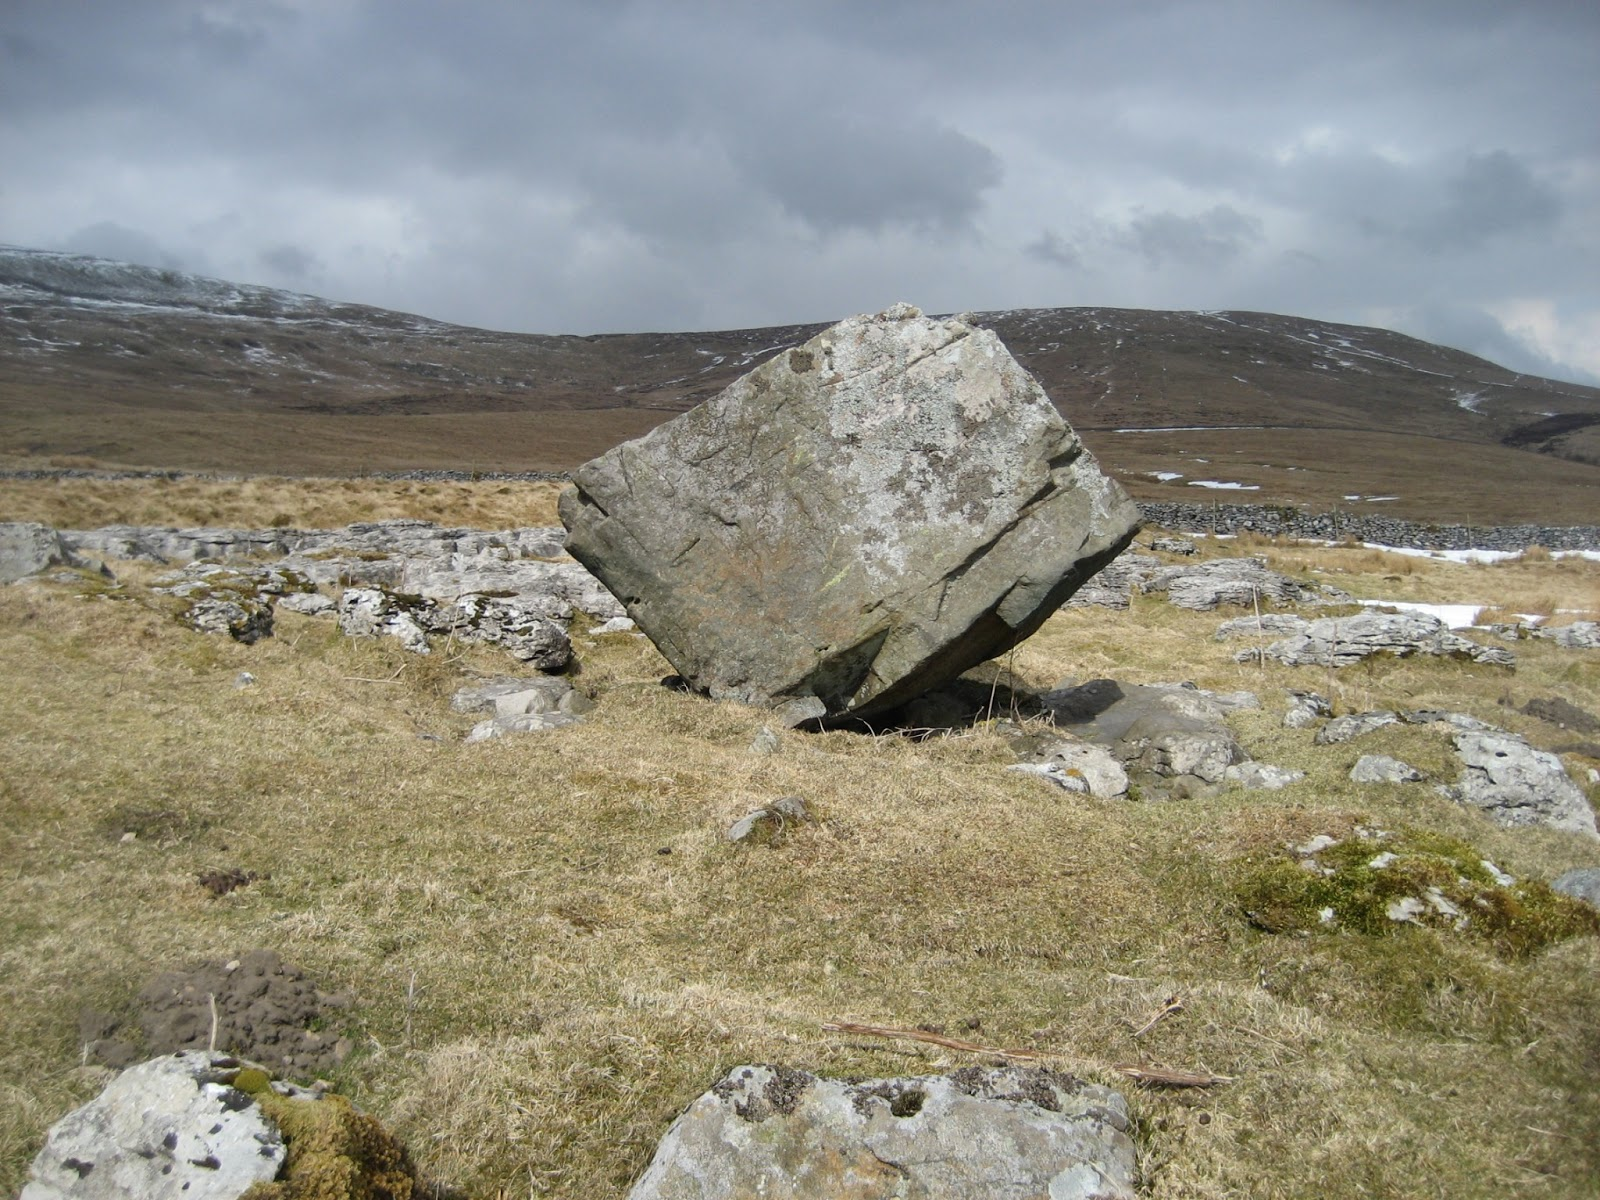 Erratic boulder deposited on the limestone above Selside by the Ribblesdale Glacier. Stephen Oldfield